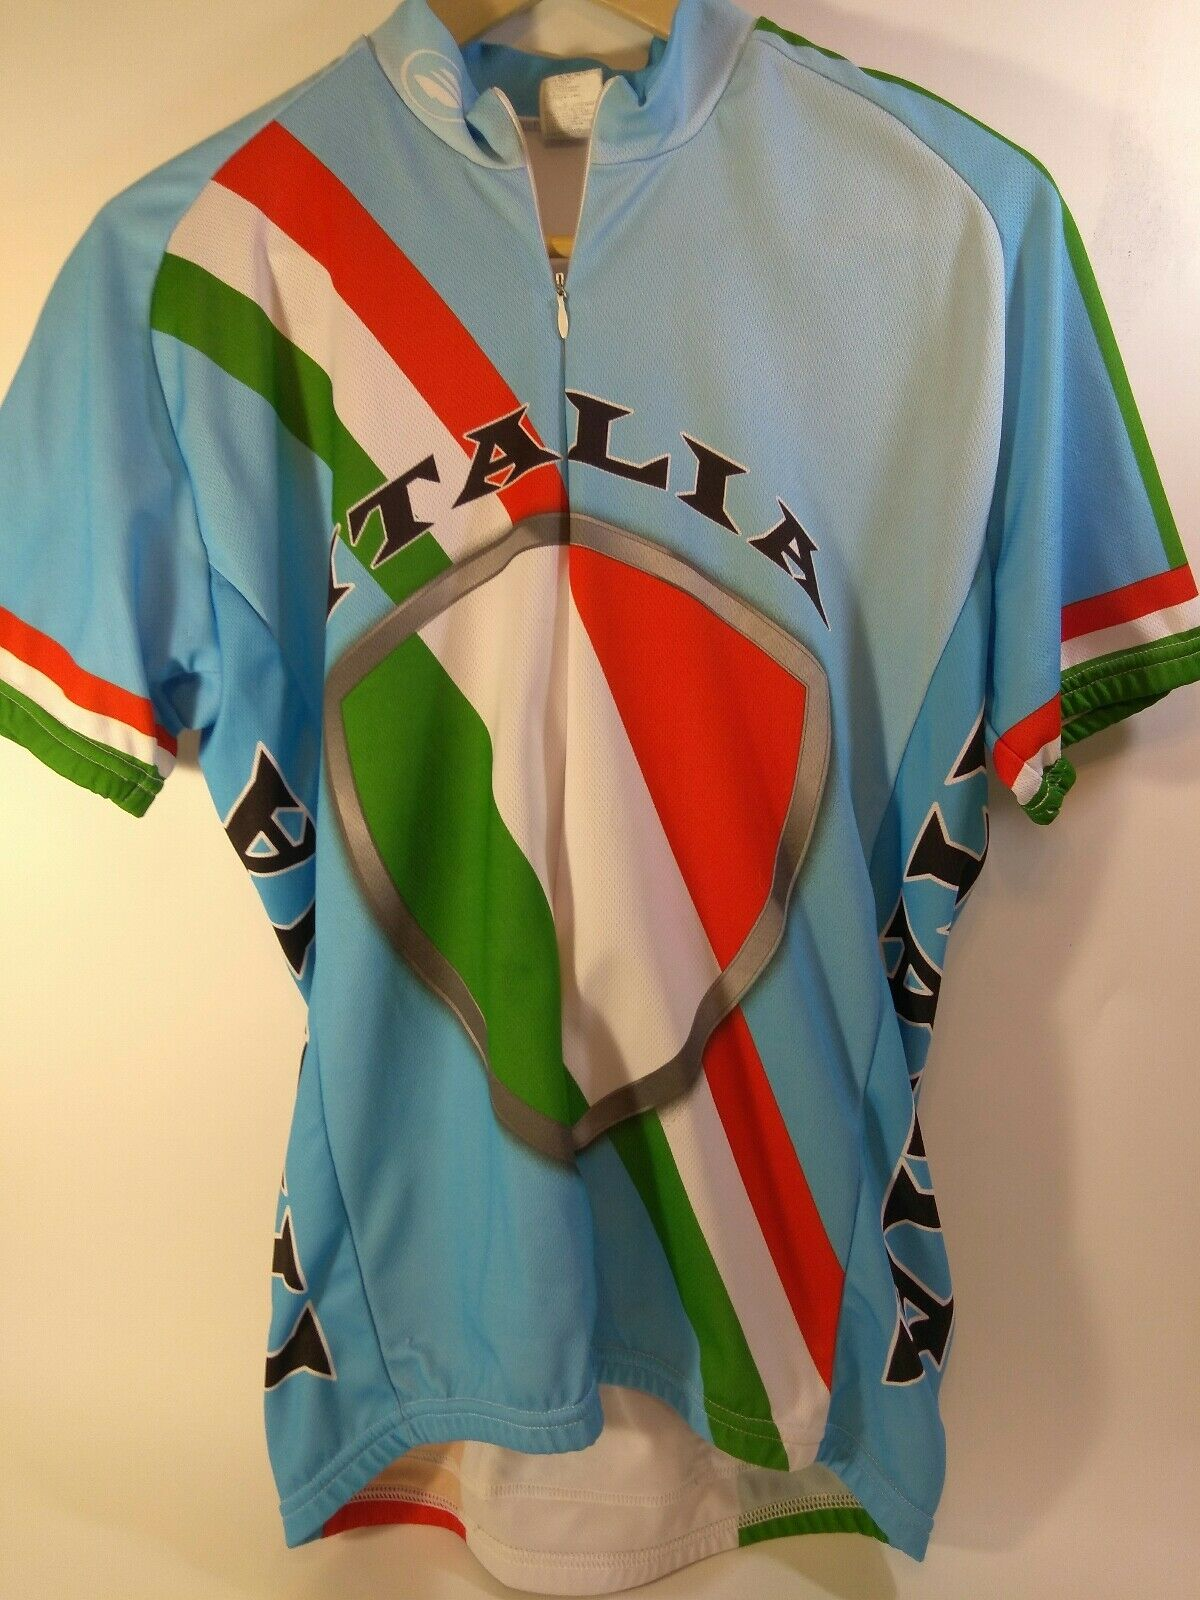 EUC Performance Italia Cycling Jersey Size Medium - Rare Design, Road Cycling